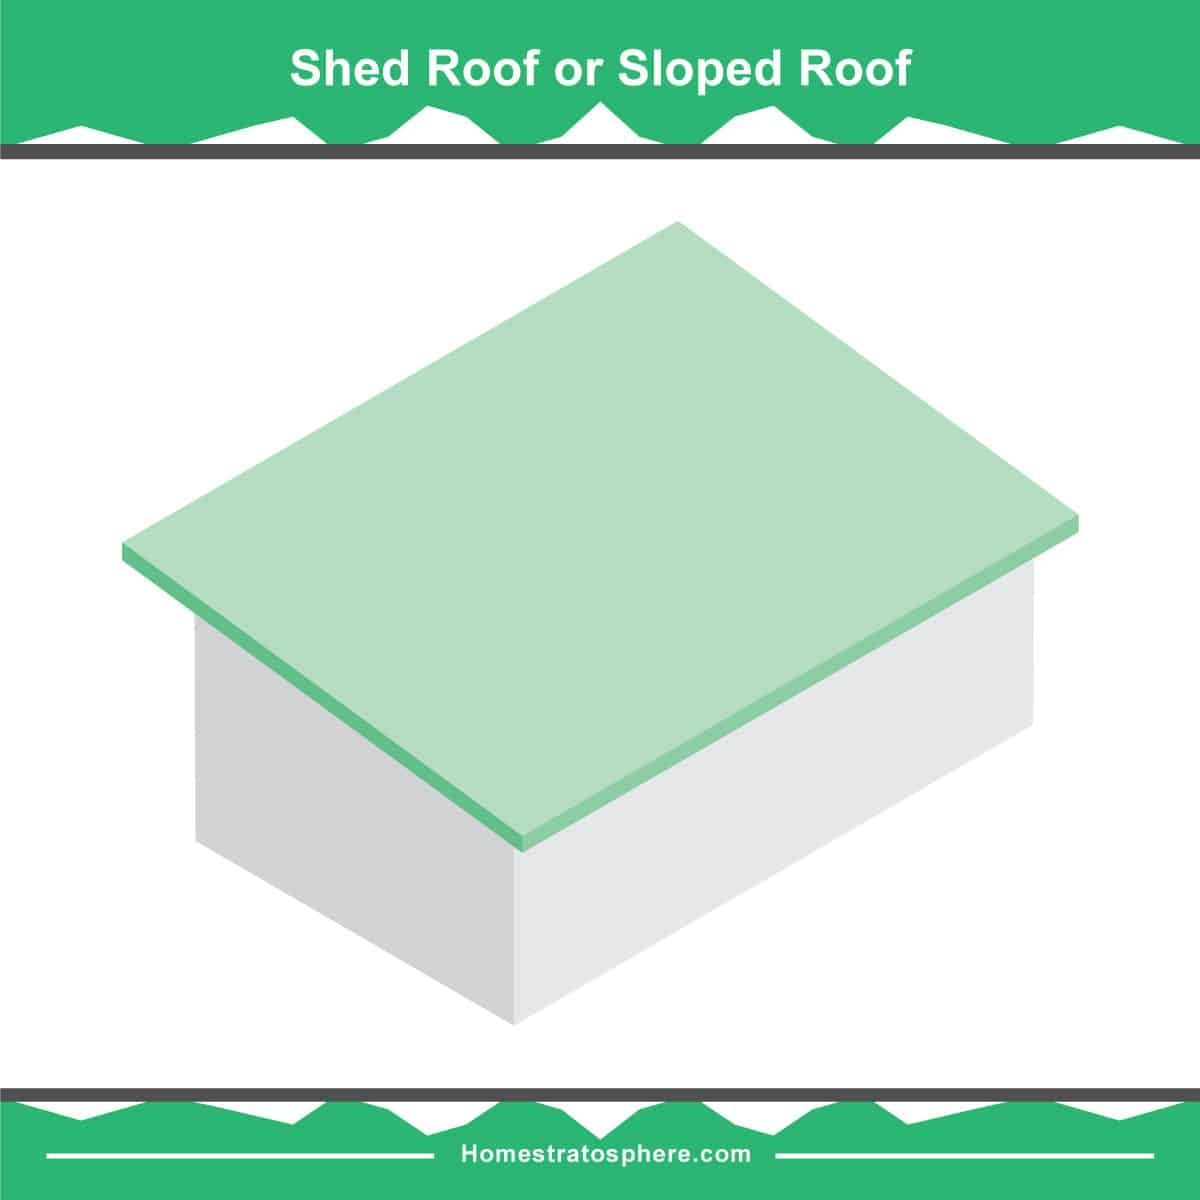 Shed or sloped roof diagram